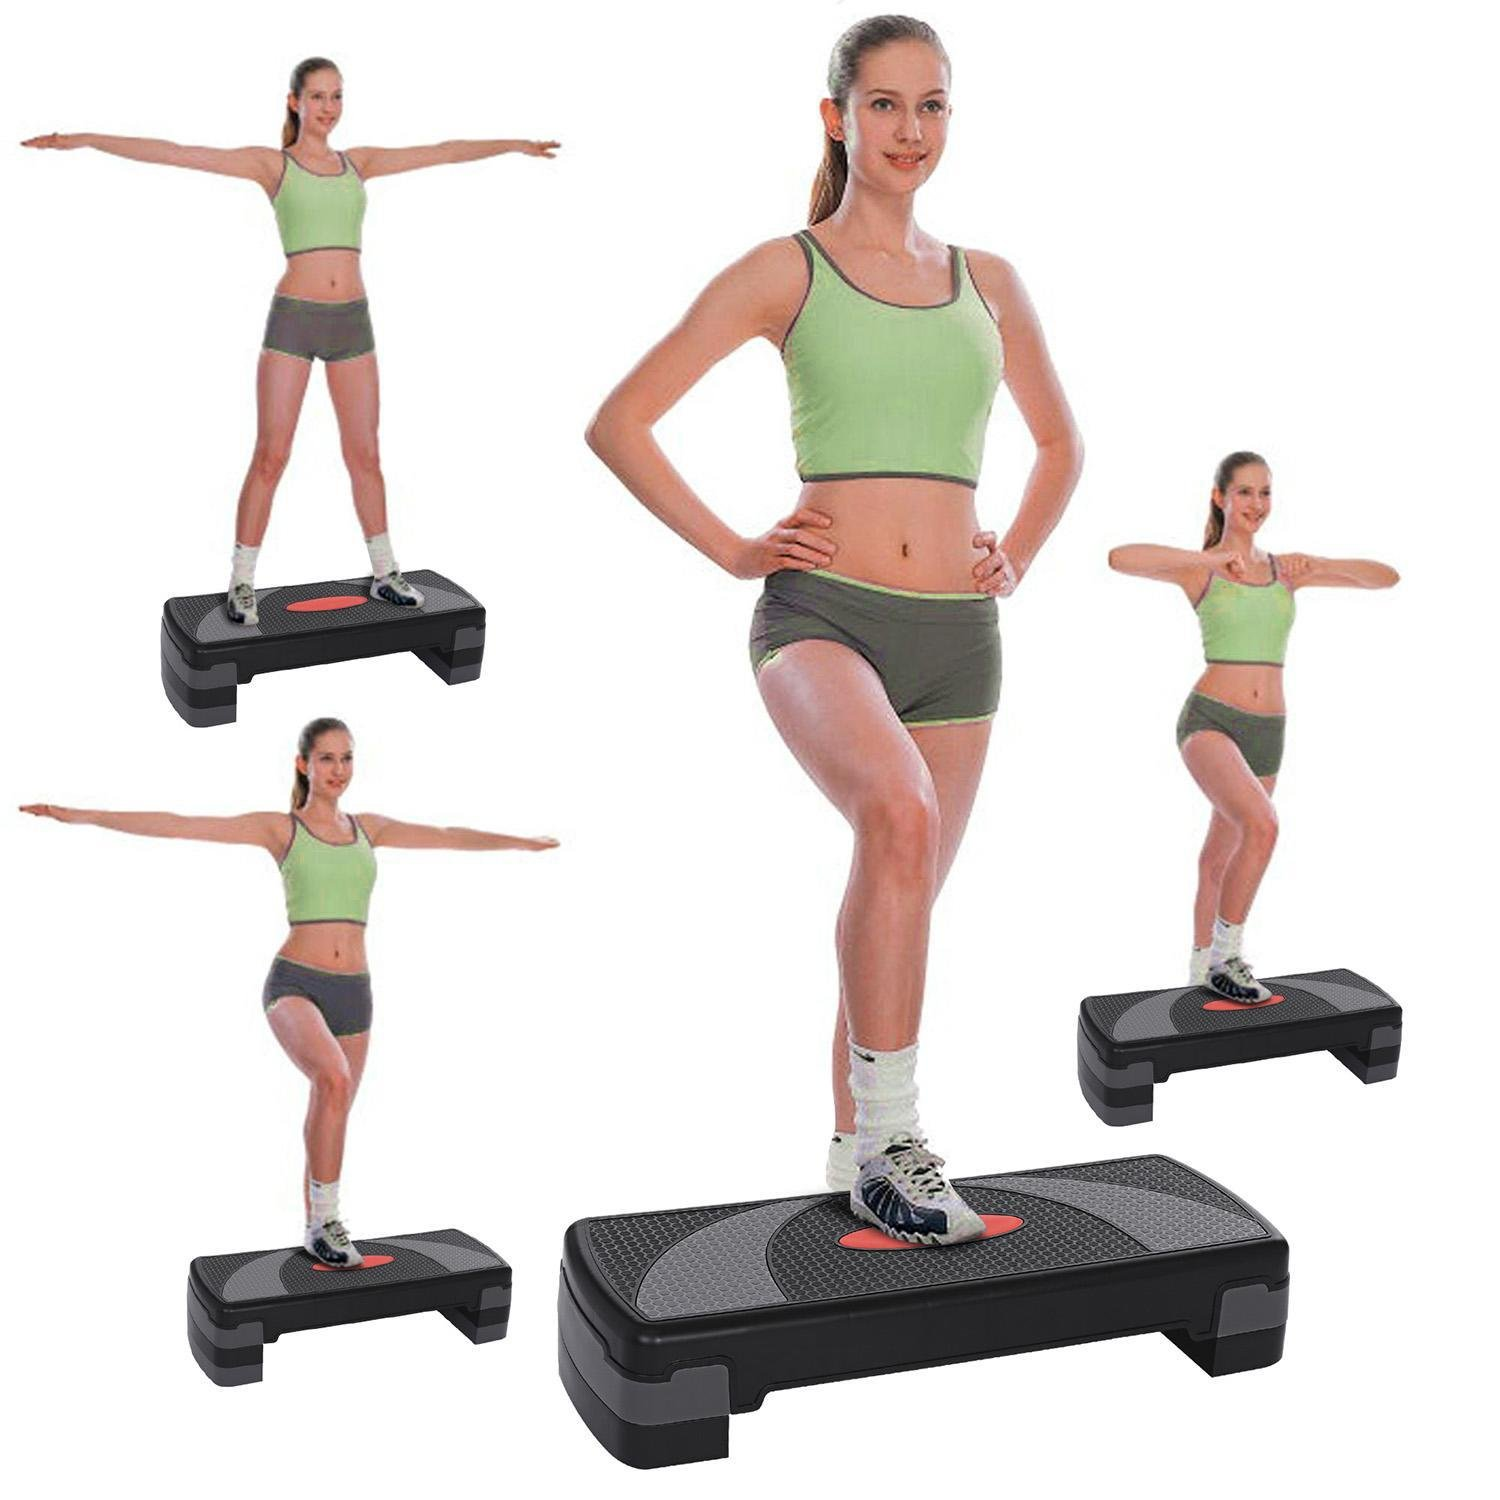 Evokem PVC Aerobic Step Trainer, Adjustable Exercise Fitness Workout Stepper Home Office, Health Club Size